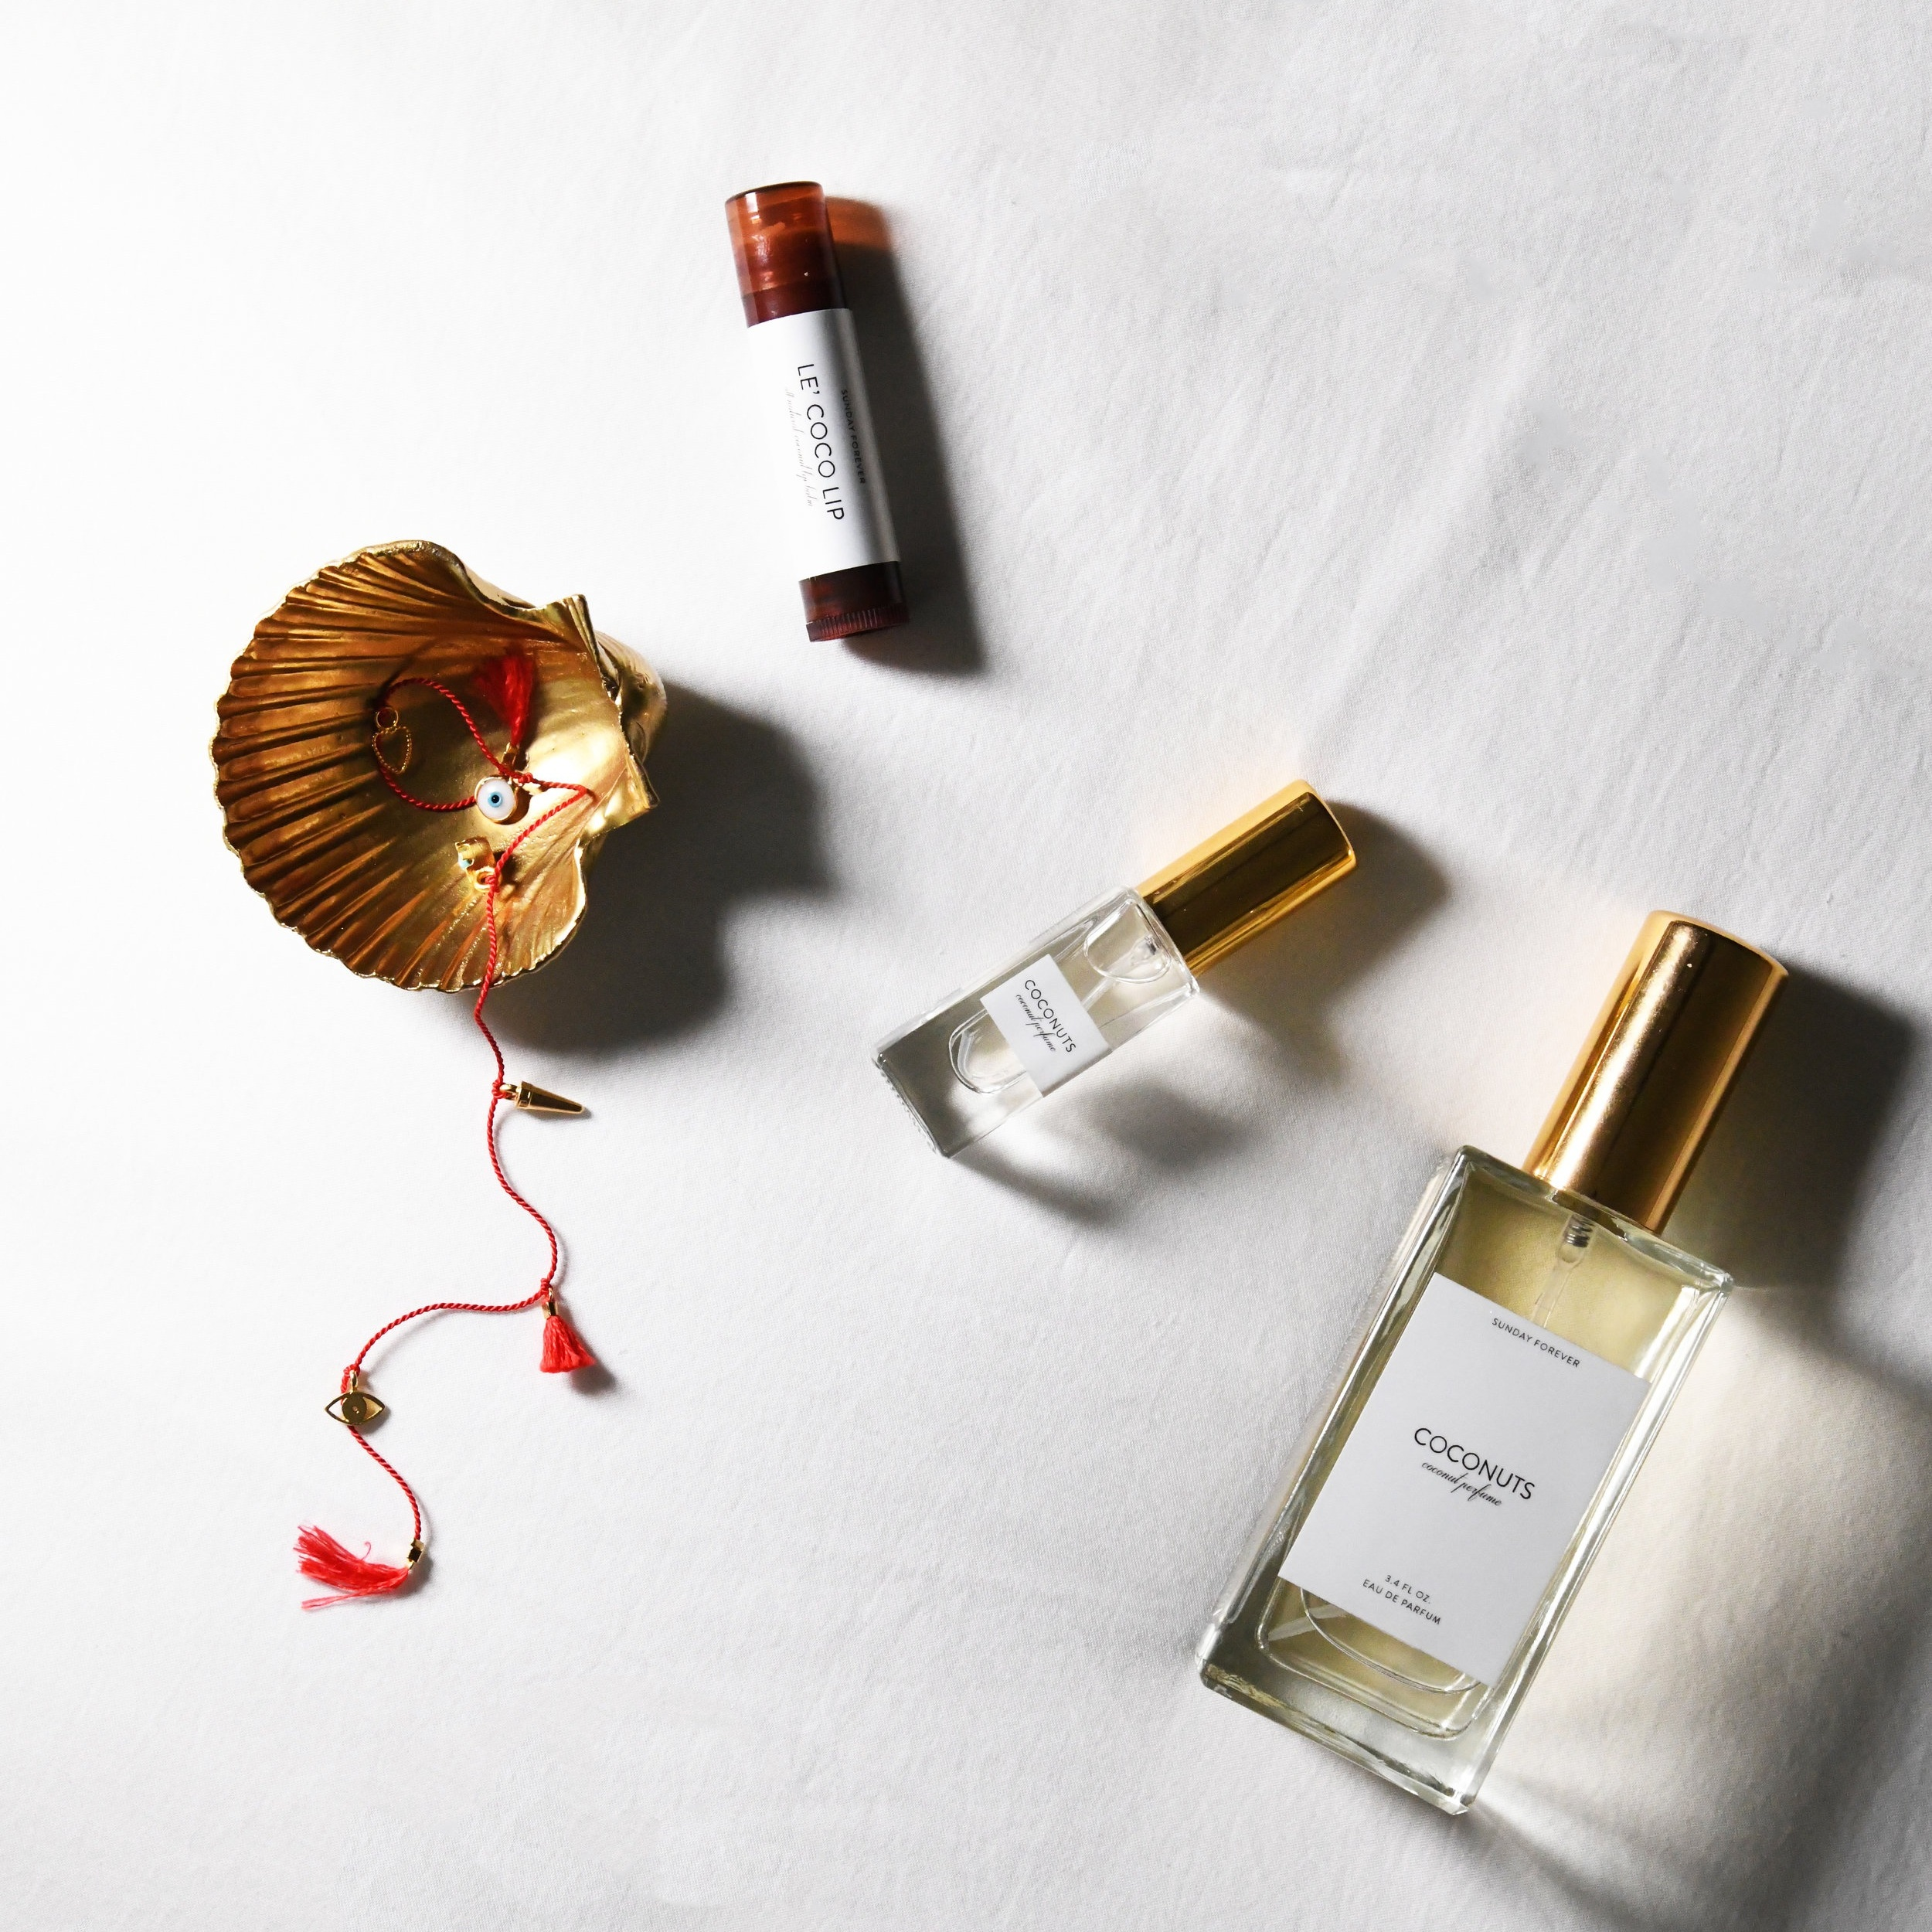 SUMMER FOREVER - EVERYTHING YOU NEED TO MAKE YOUR SUMMER DREAMS COME TRUE. THE PERFECT COCONUT PERFUME, TANLINES CANDLES, LE'COCO LIP BALM, AND ANKLETS, SO MANY ANKLETS.